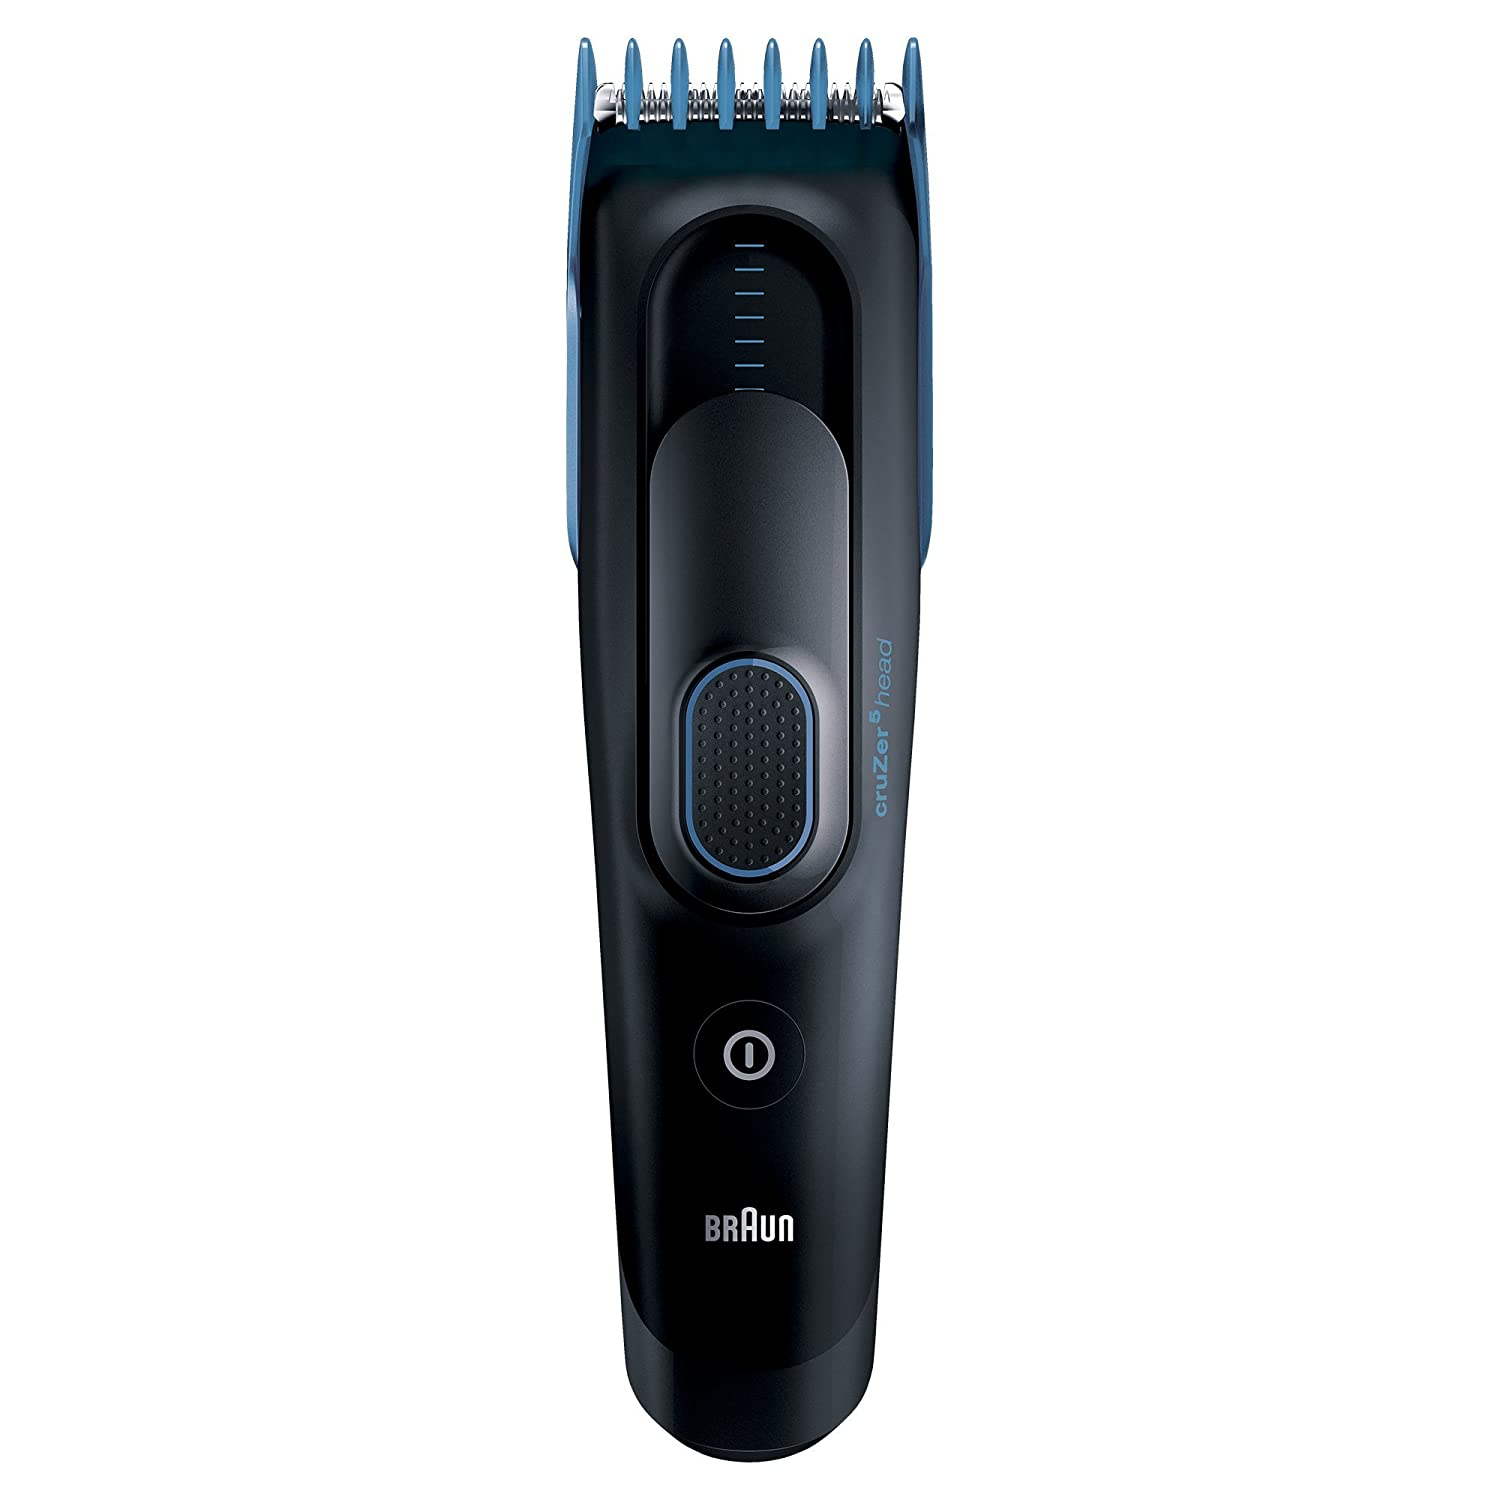 Braun Cruzer 5 Electric Shaver Styler Trimmer, 3-in-1 Ultimate Hair Clipper, Wet Dry, 8 Settings for Perfect Style in All Lengths, Fully Washable